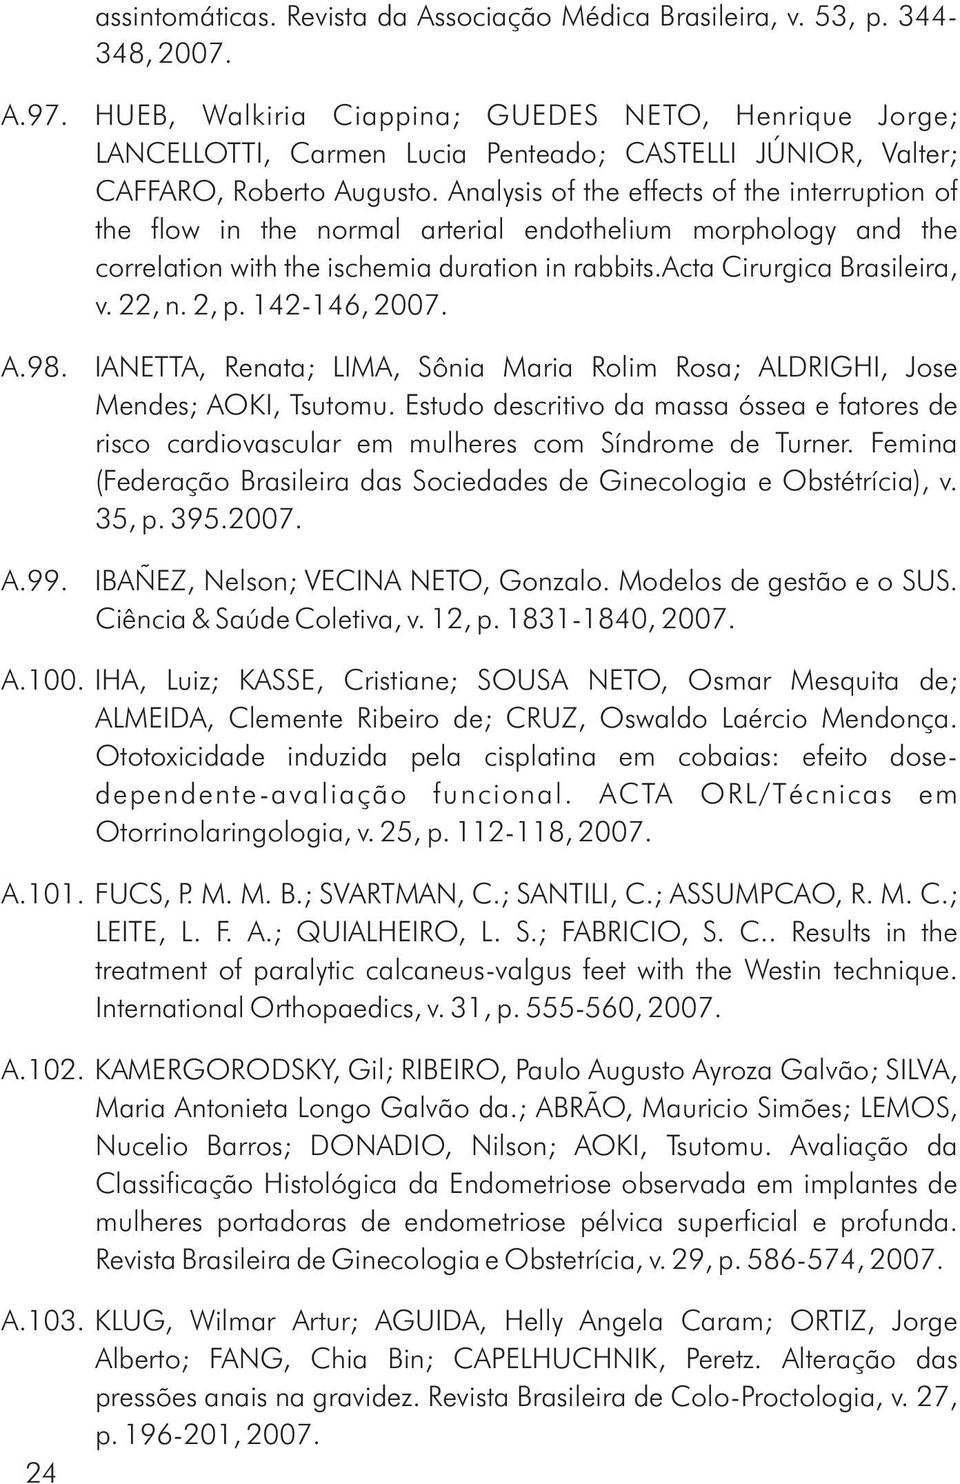 Analysis of the effects of the interruption of the flow in the normal arterial endothelium morphology and the correlation with the ischemia duration in rabbits.acta Cirurgica Brasileira, v. 22, n.